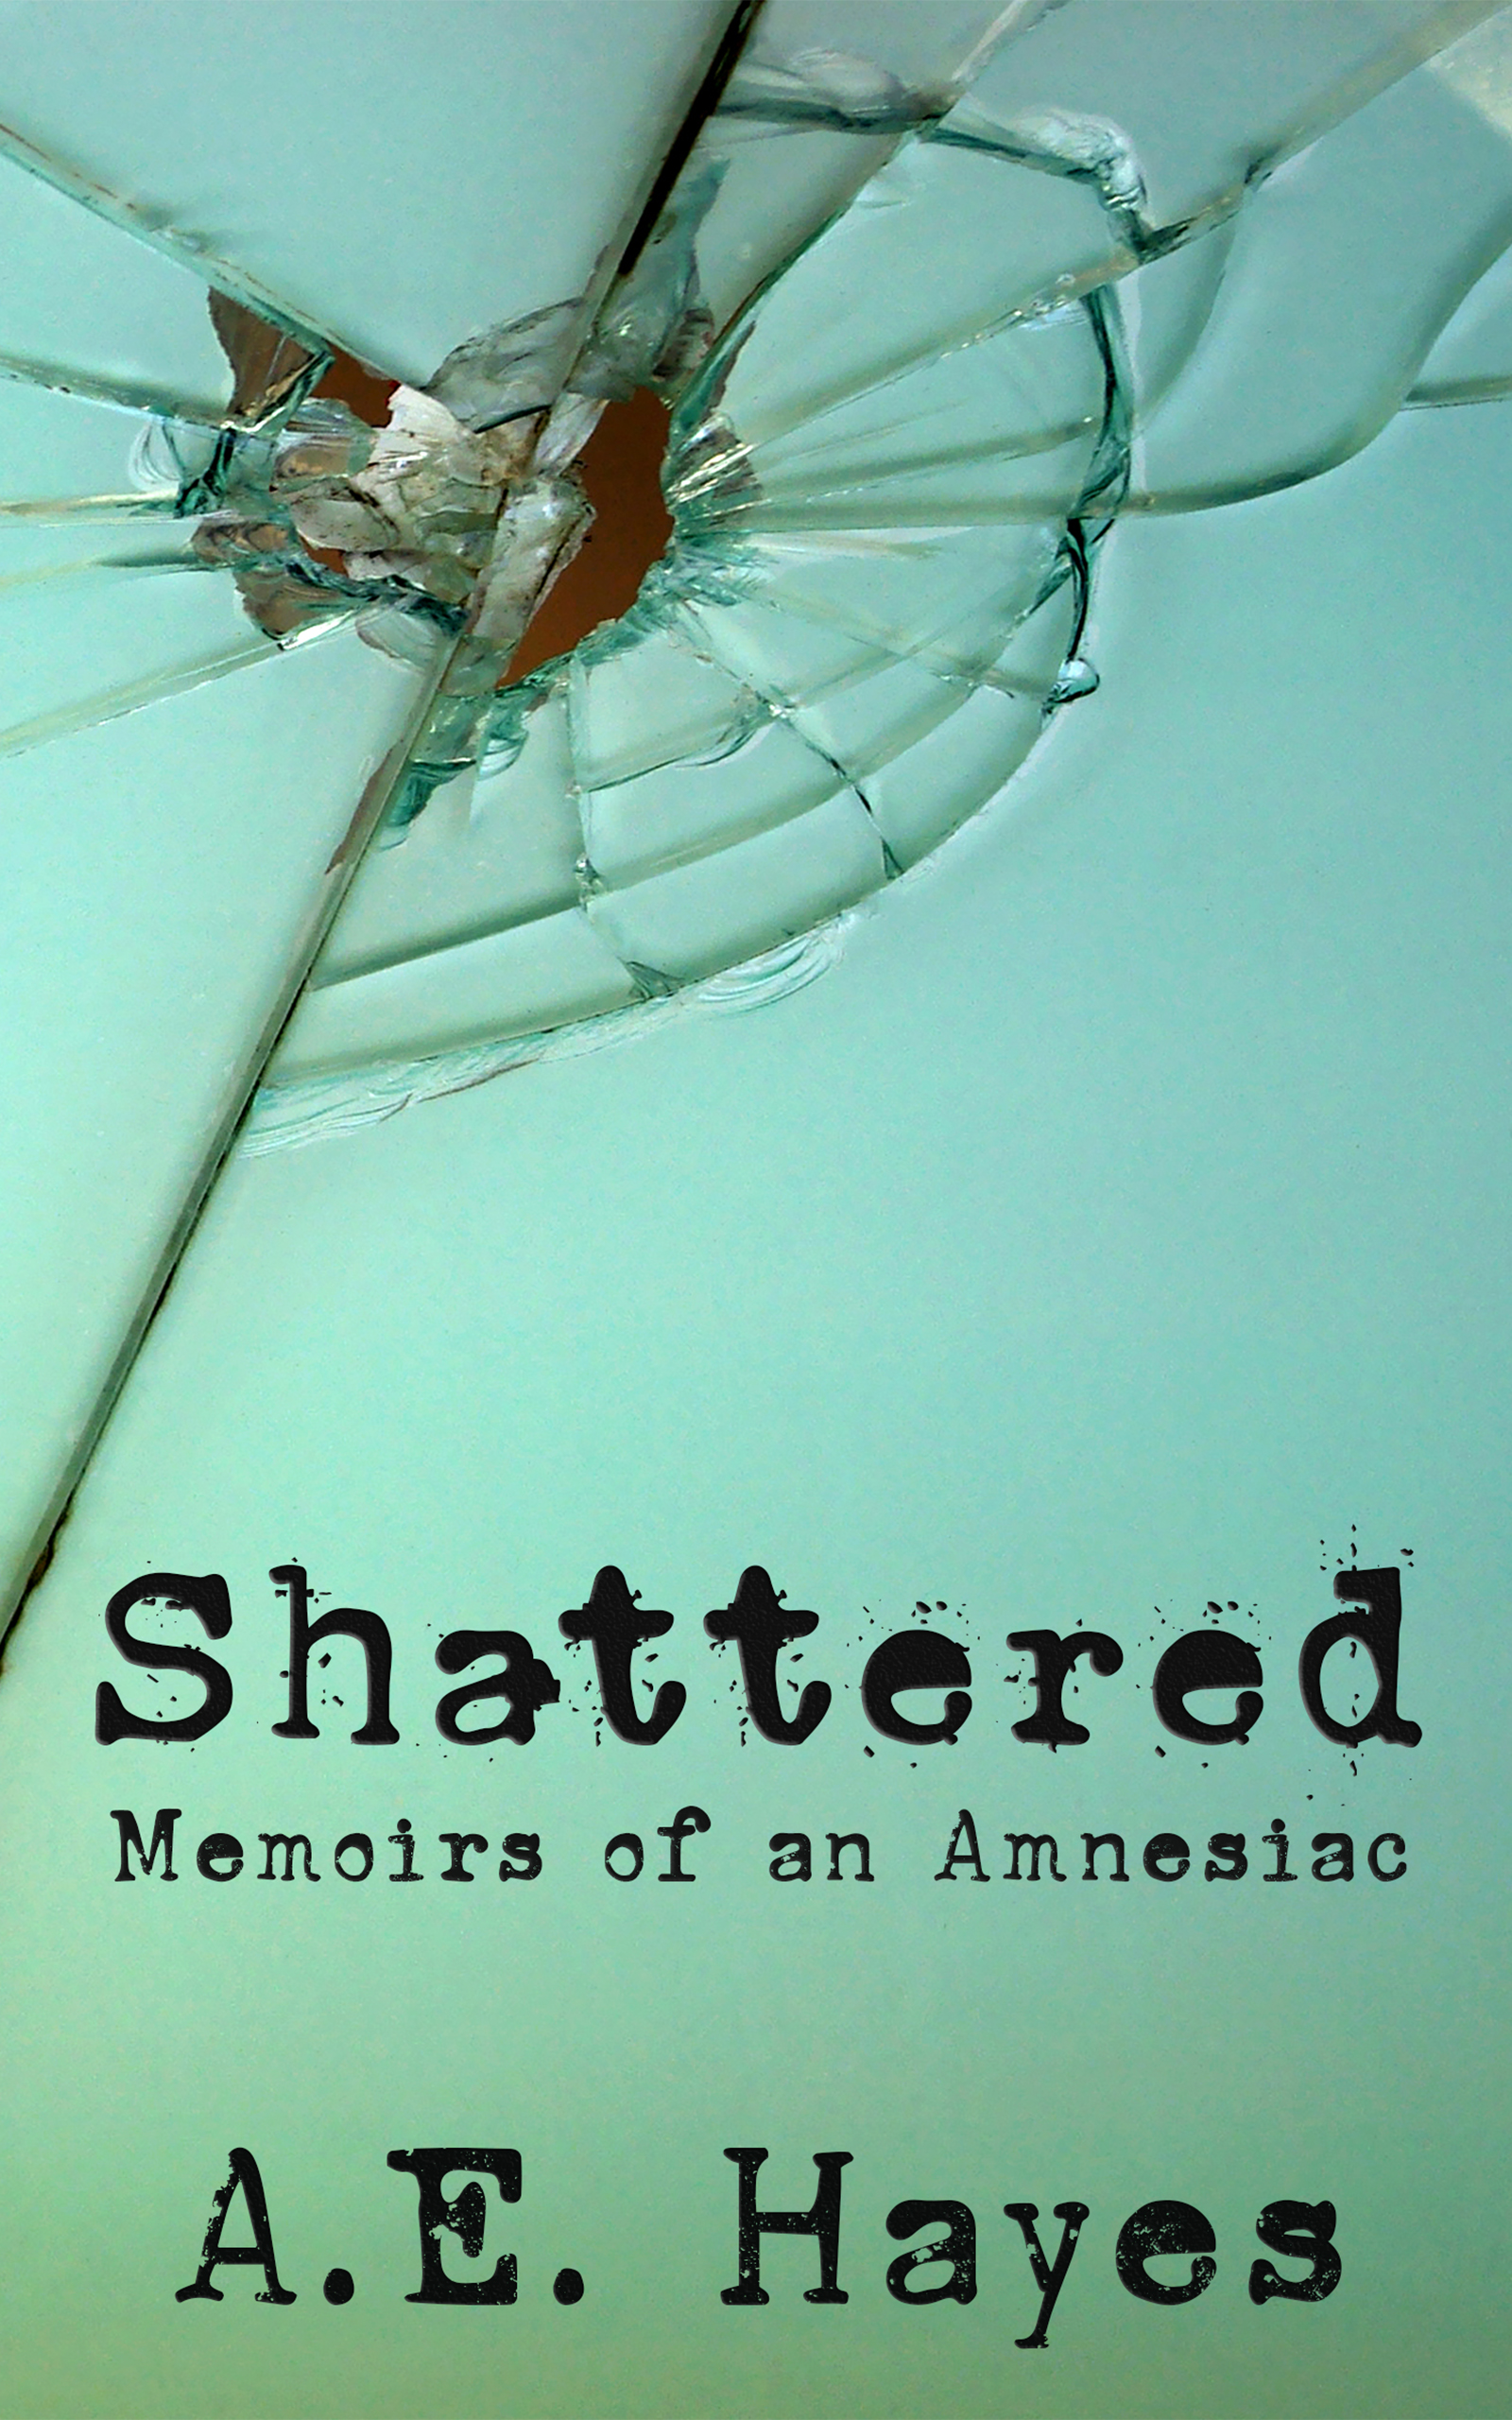 Shattered: Memoirs of an Amnesiac